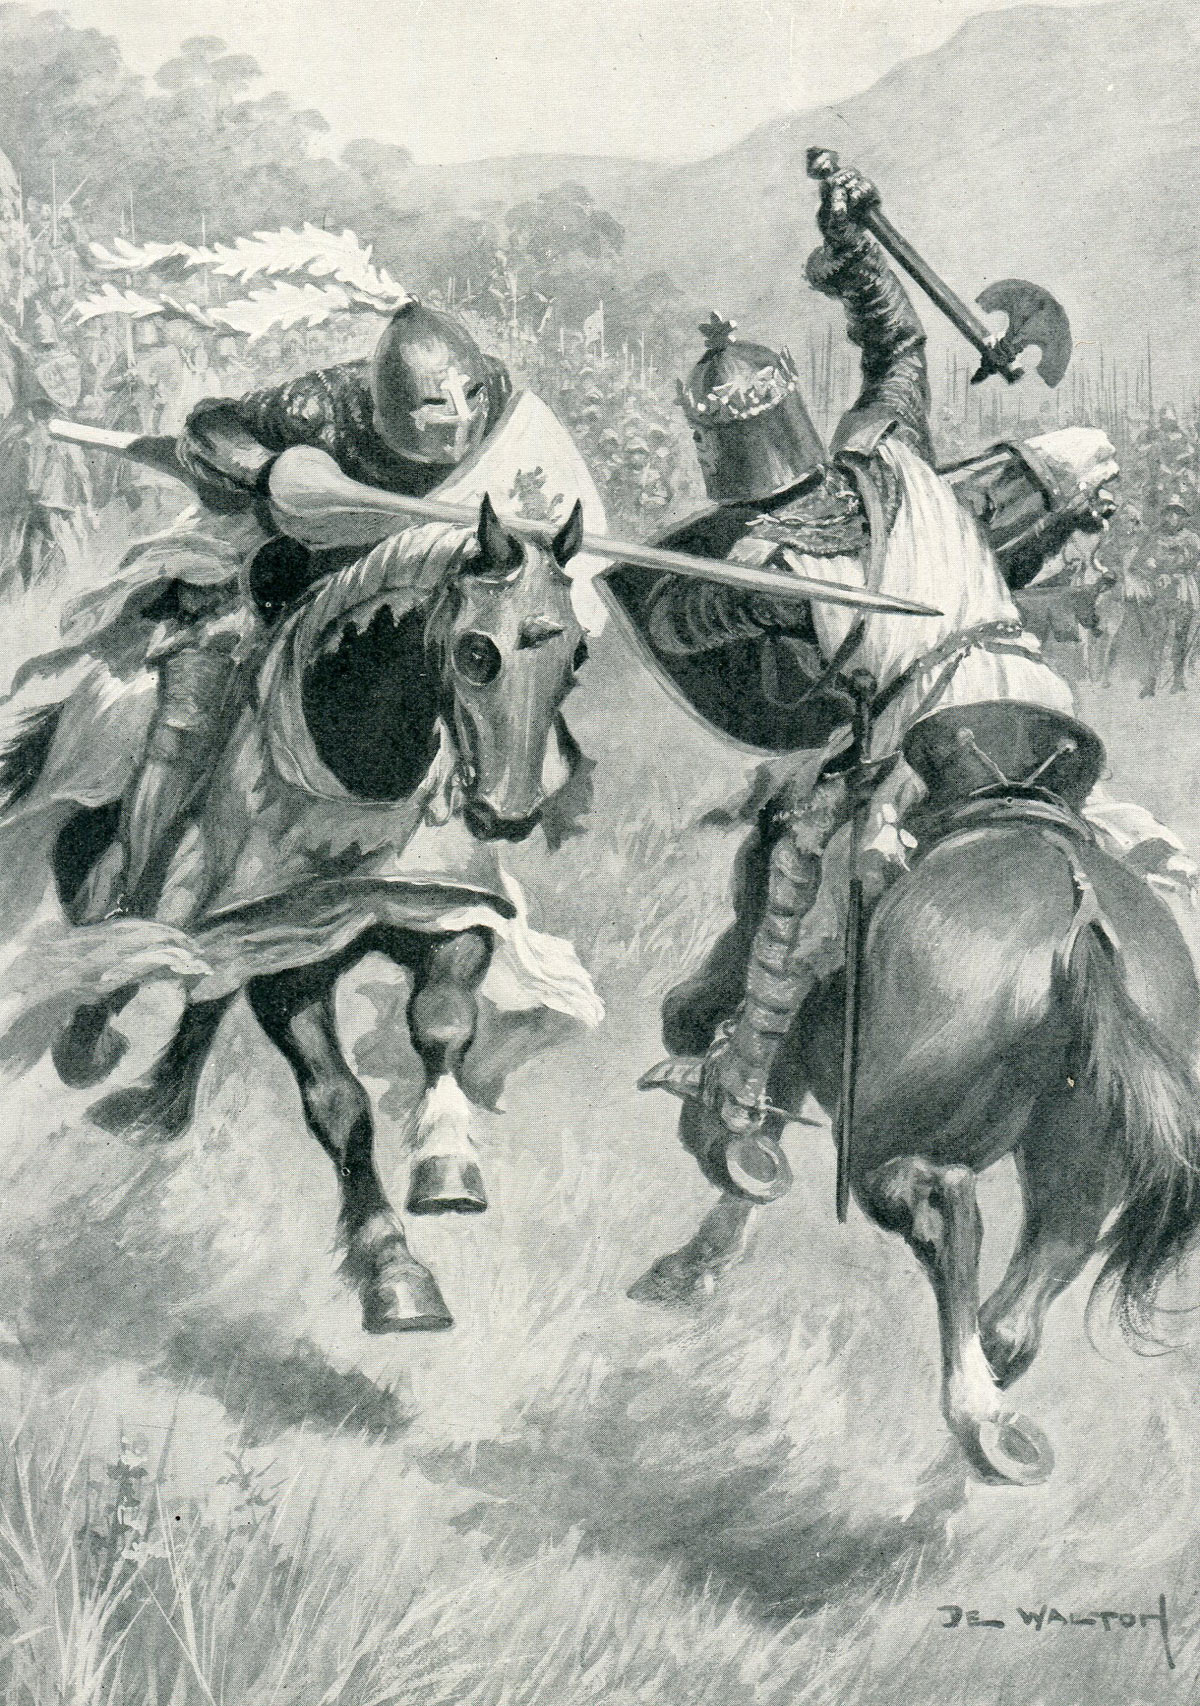 Robert de Bruce strikes and kills Sir Henry de Bohun with his axe in single combat before the Battle of Bannockburn on 23rd June 1314: picture by Ambrose de Walton: click here to buy this picture